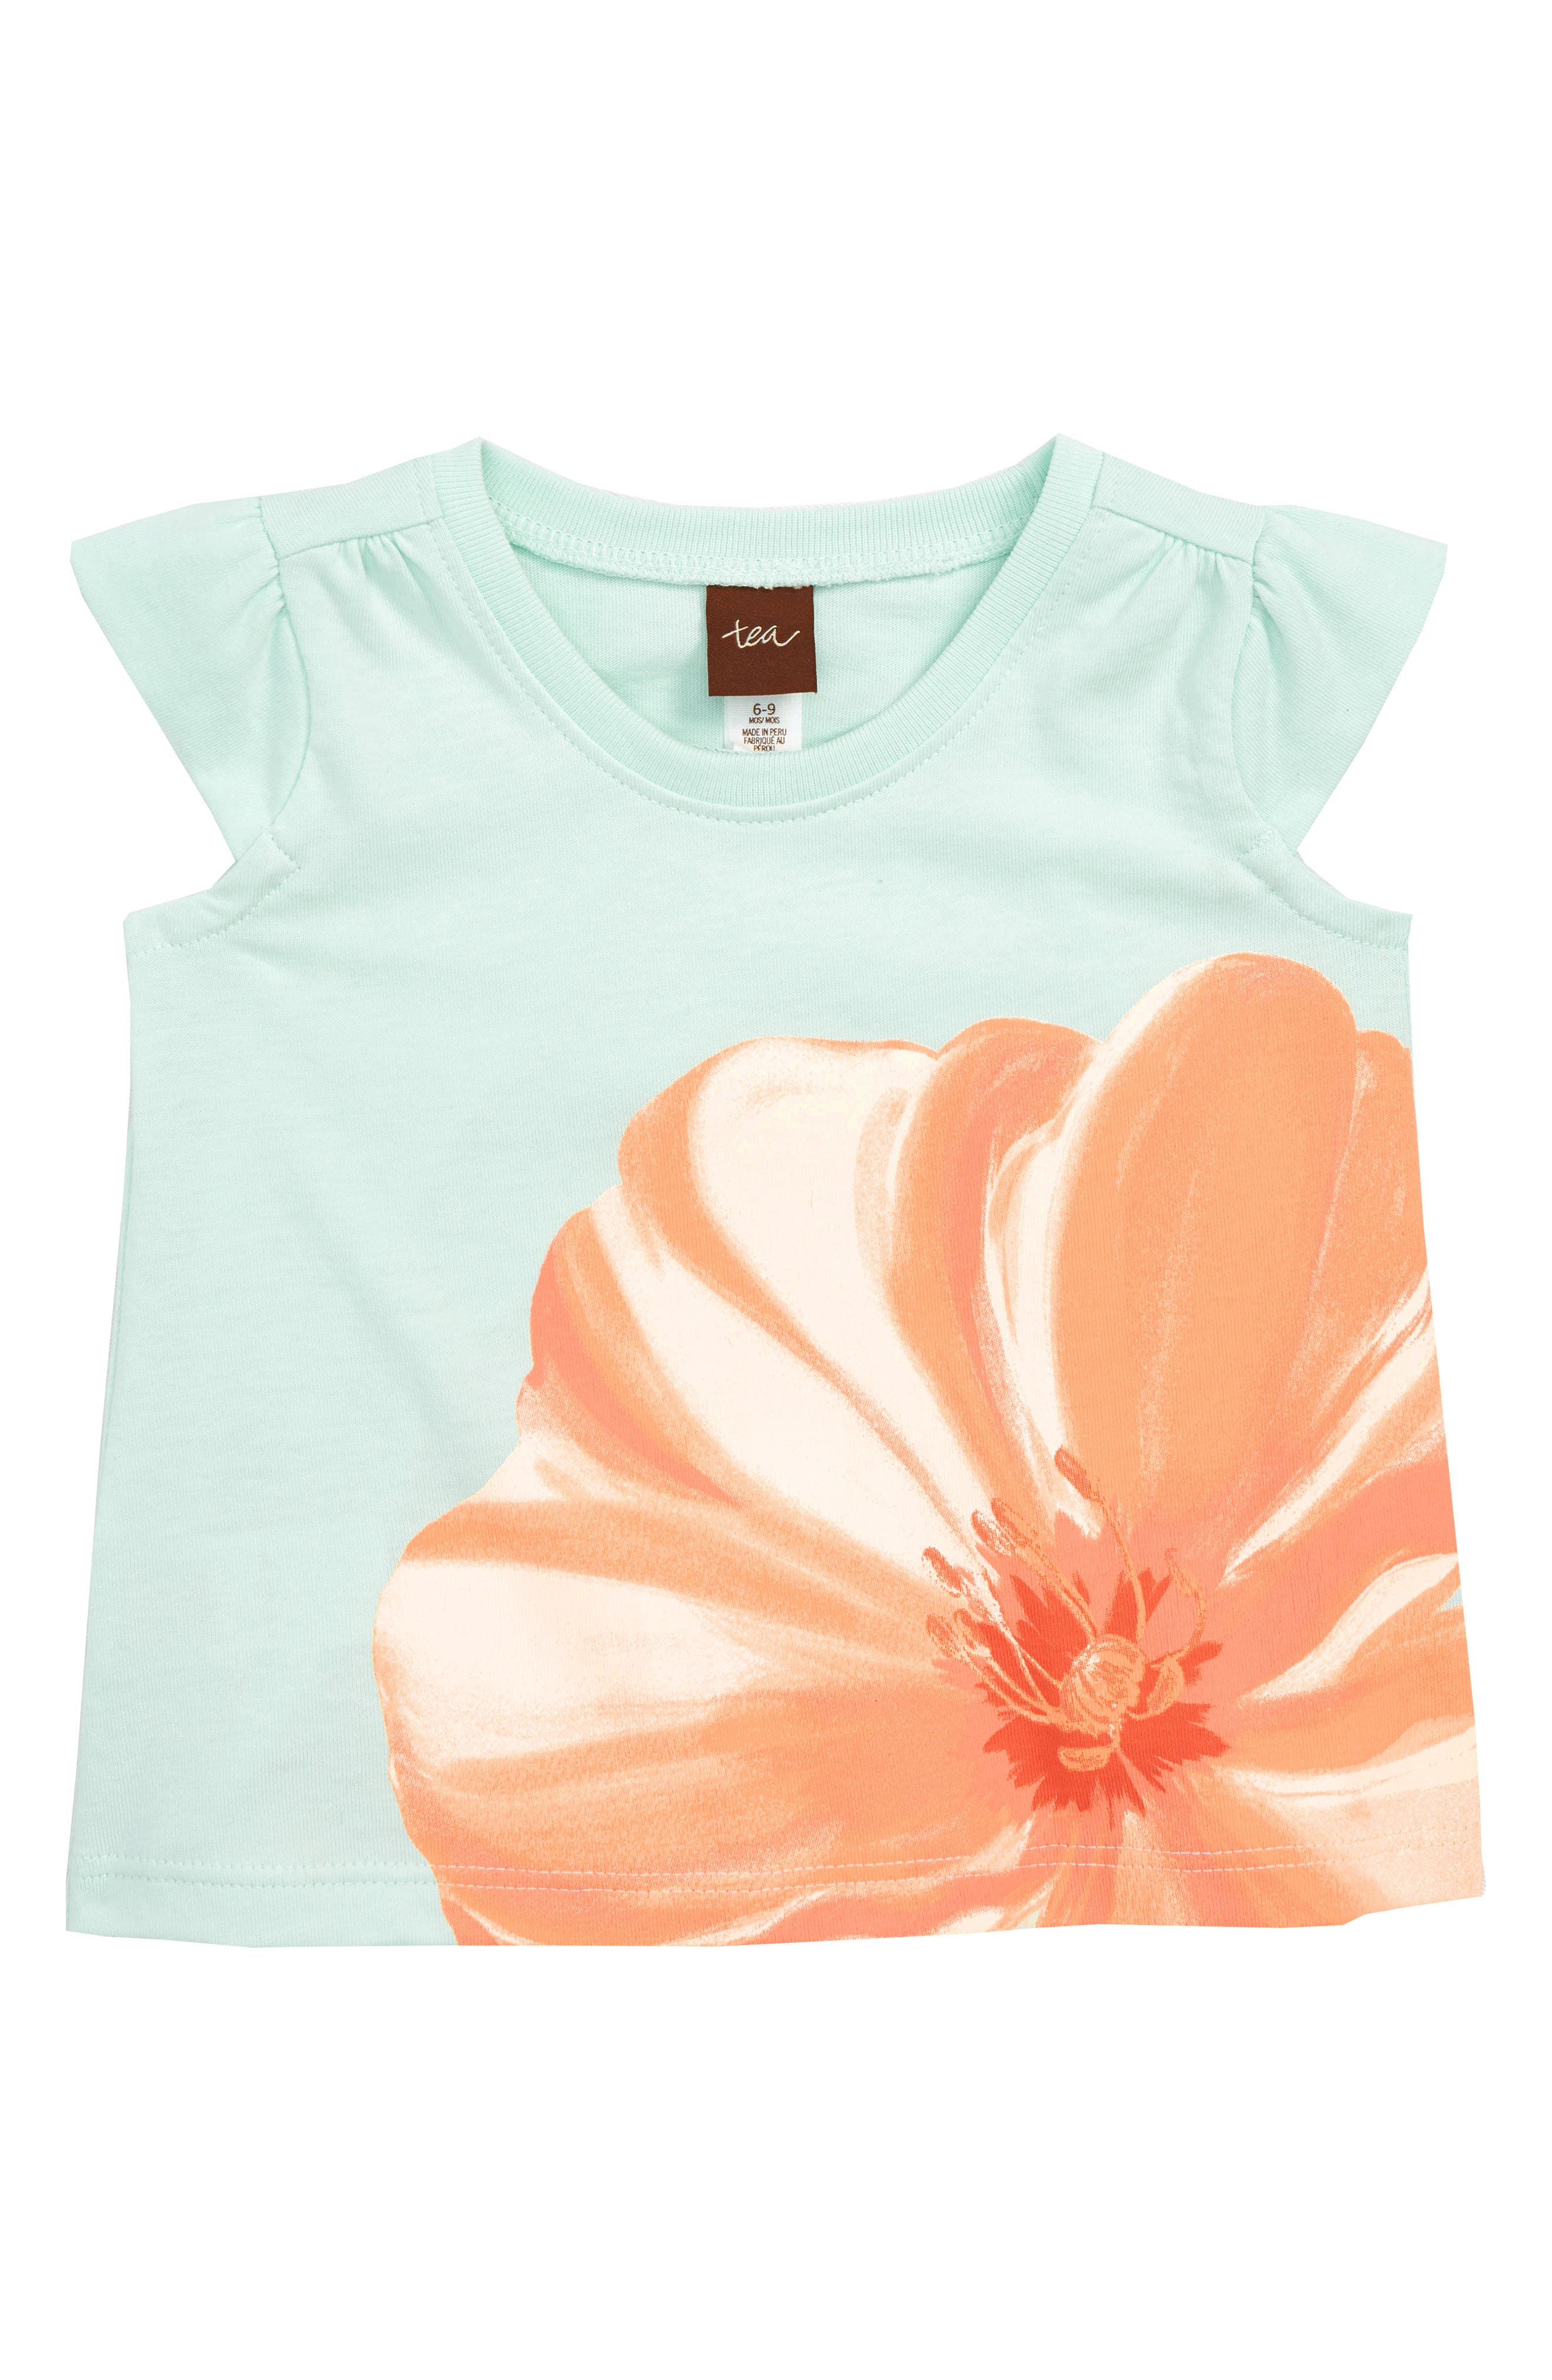 Flower Graphic Tee,                             Main thumbnail 1, color,                             456